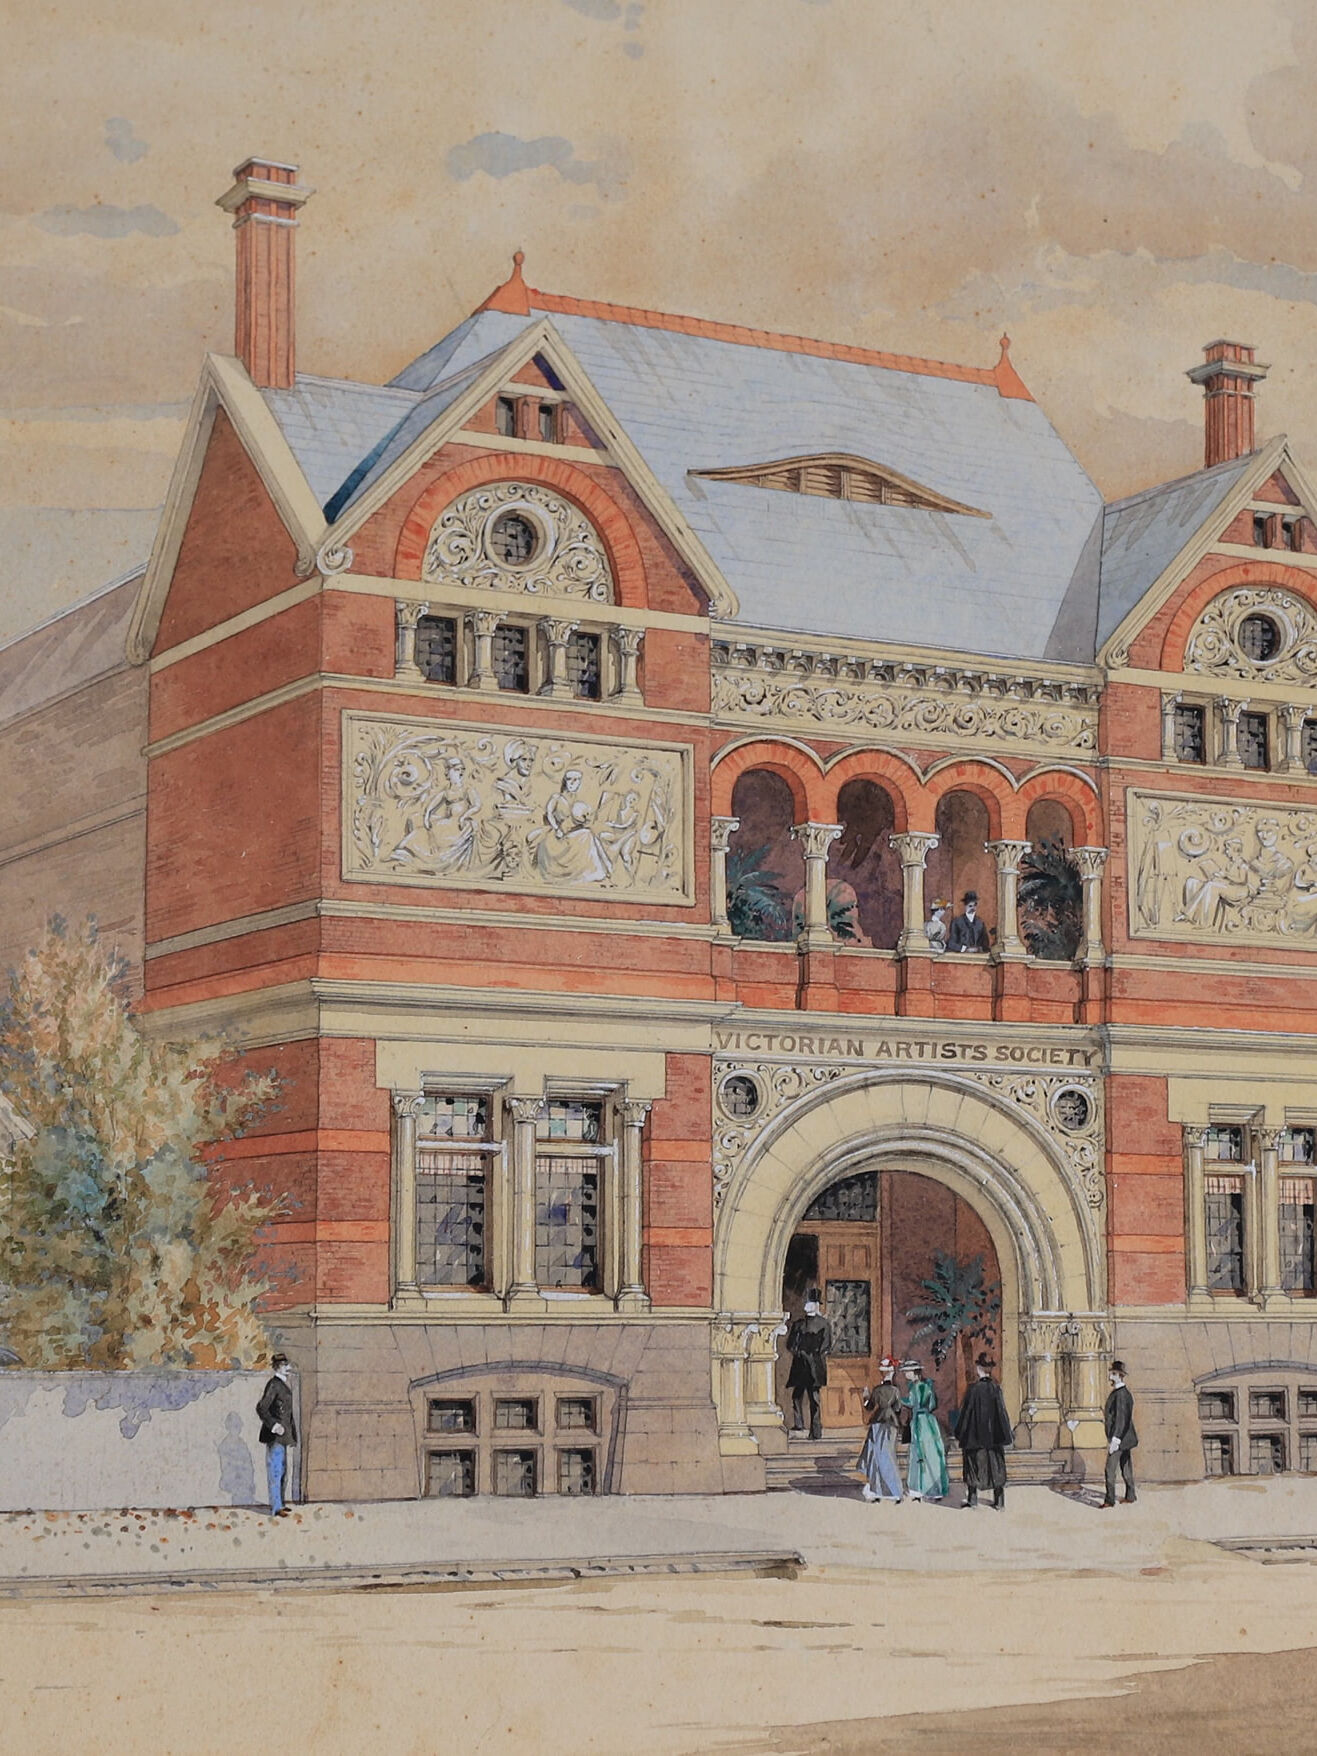 01B_HISTORY__Watercolour on board by Wiliam Tibbits_Painting of Building From Andrew MacKenzie (1)